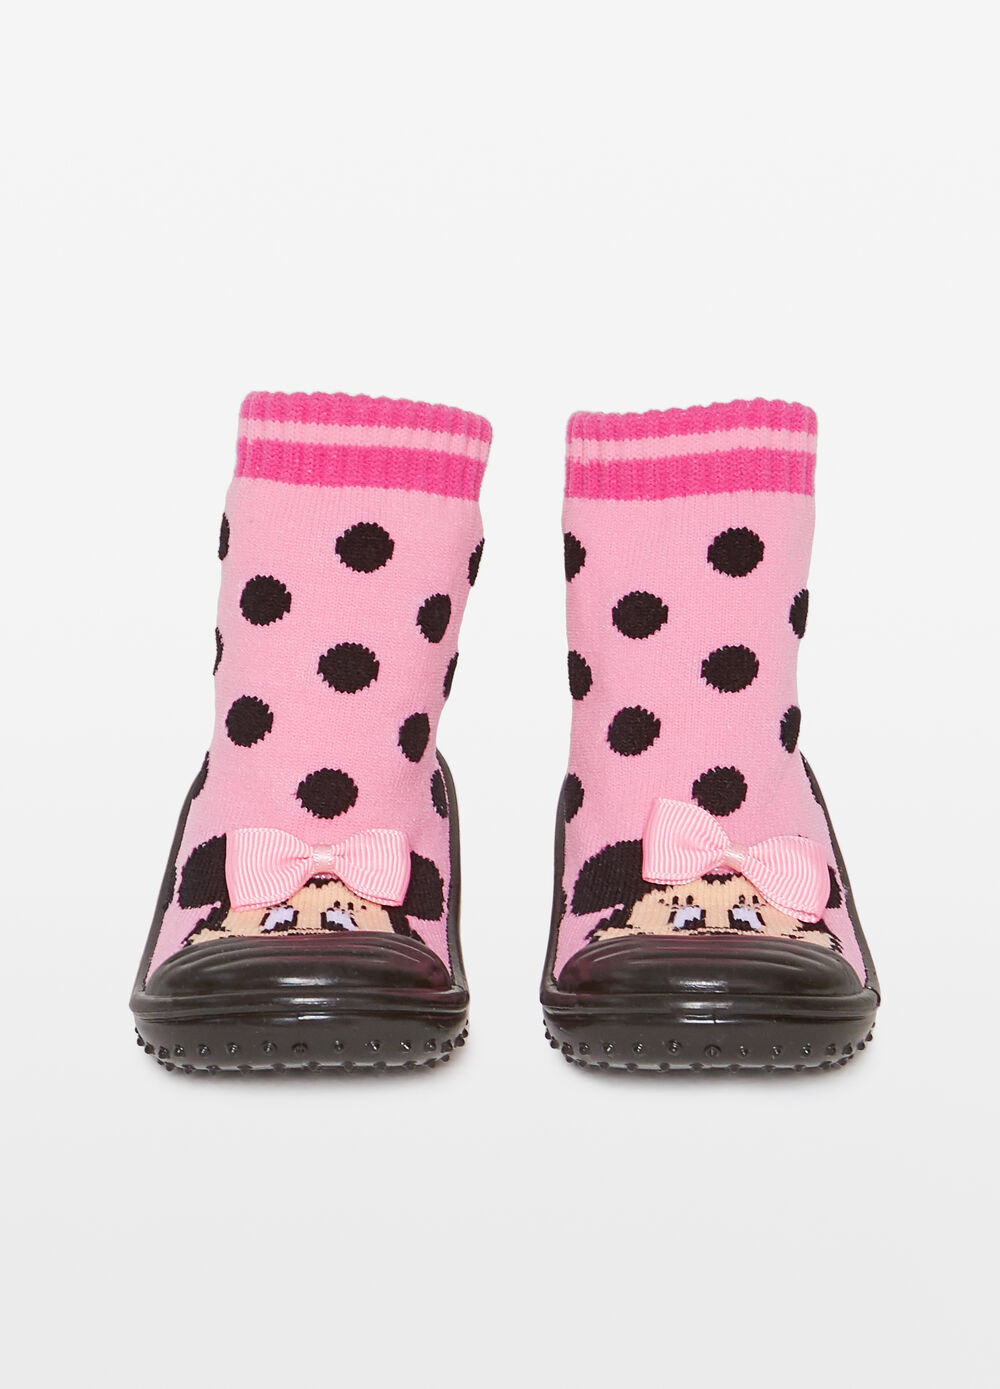 High slippers with polka dot and Minnie Mouse pattern